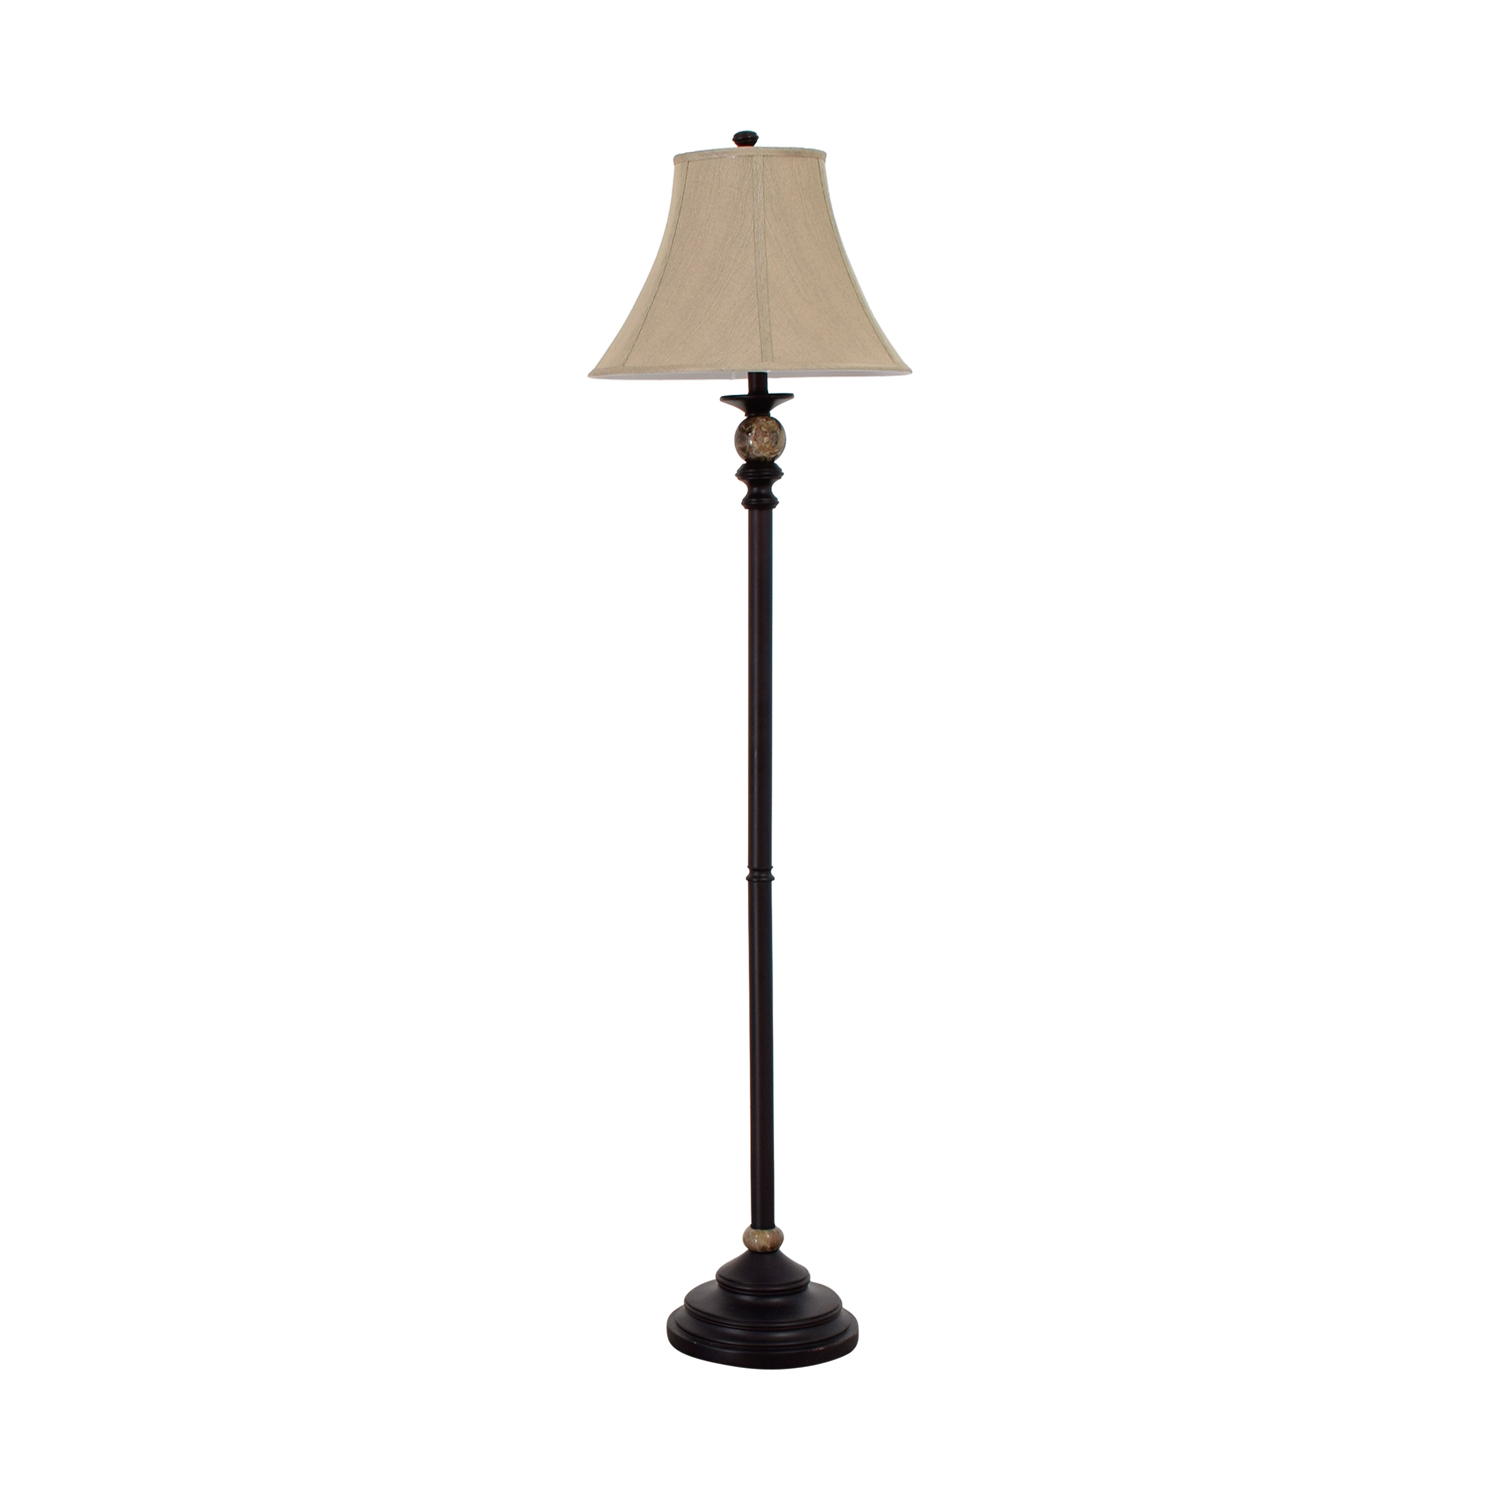 buy Raymour & Flanigan Faux Marble Floor Lamp Raymour & Flanigan Lamps